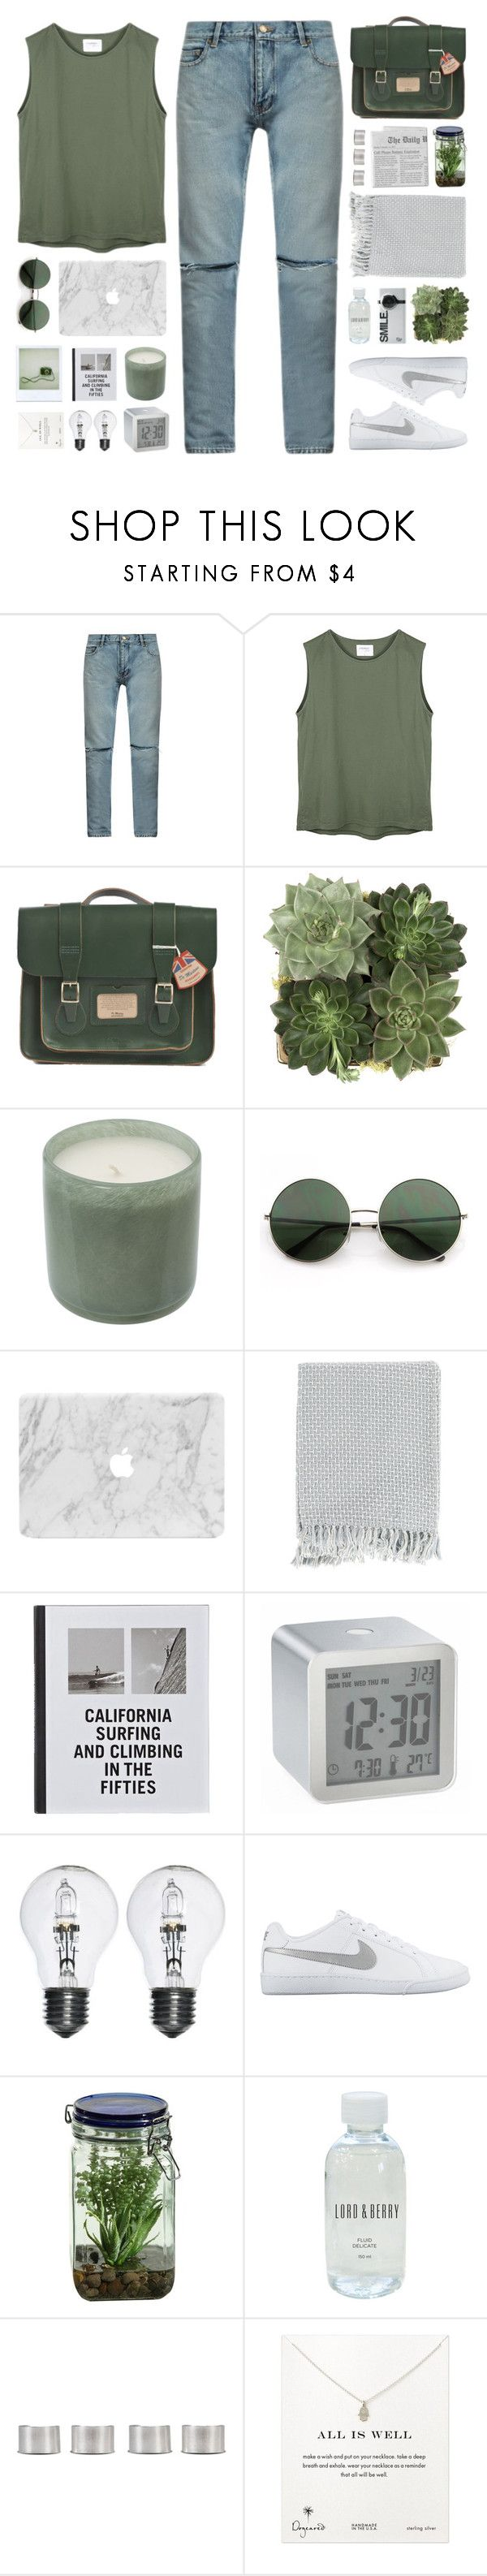 """dedicated to mae <3"" by via-m ❤ liked on Polyvore featuring Yves Saint Laurent, Dr. Martens, Jayson Home, LAFCO, Surya, Patagonia, LEXON, NIKE, Polaroid and Alöe"